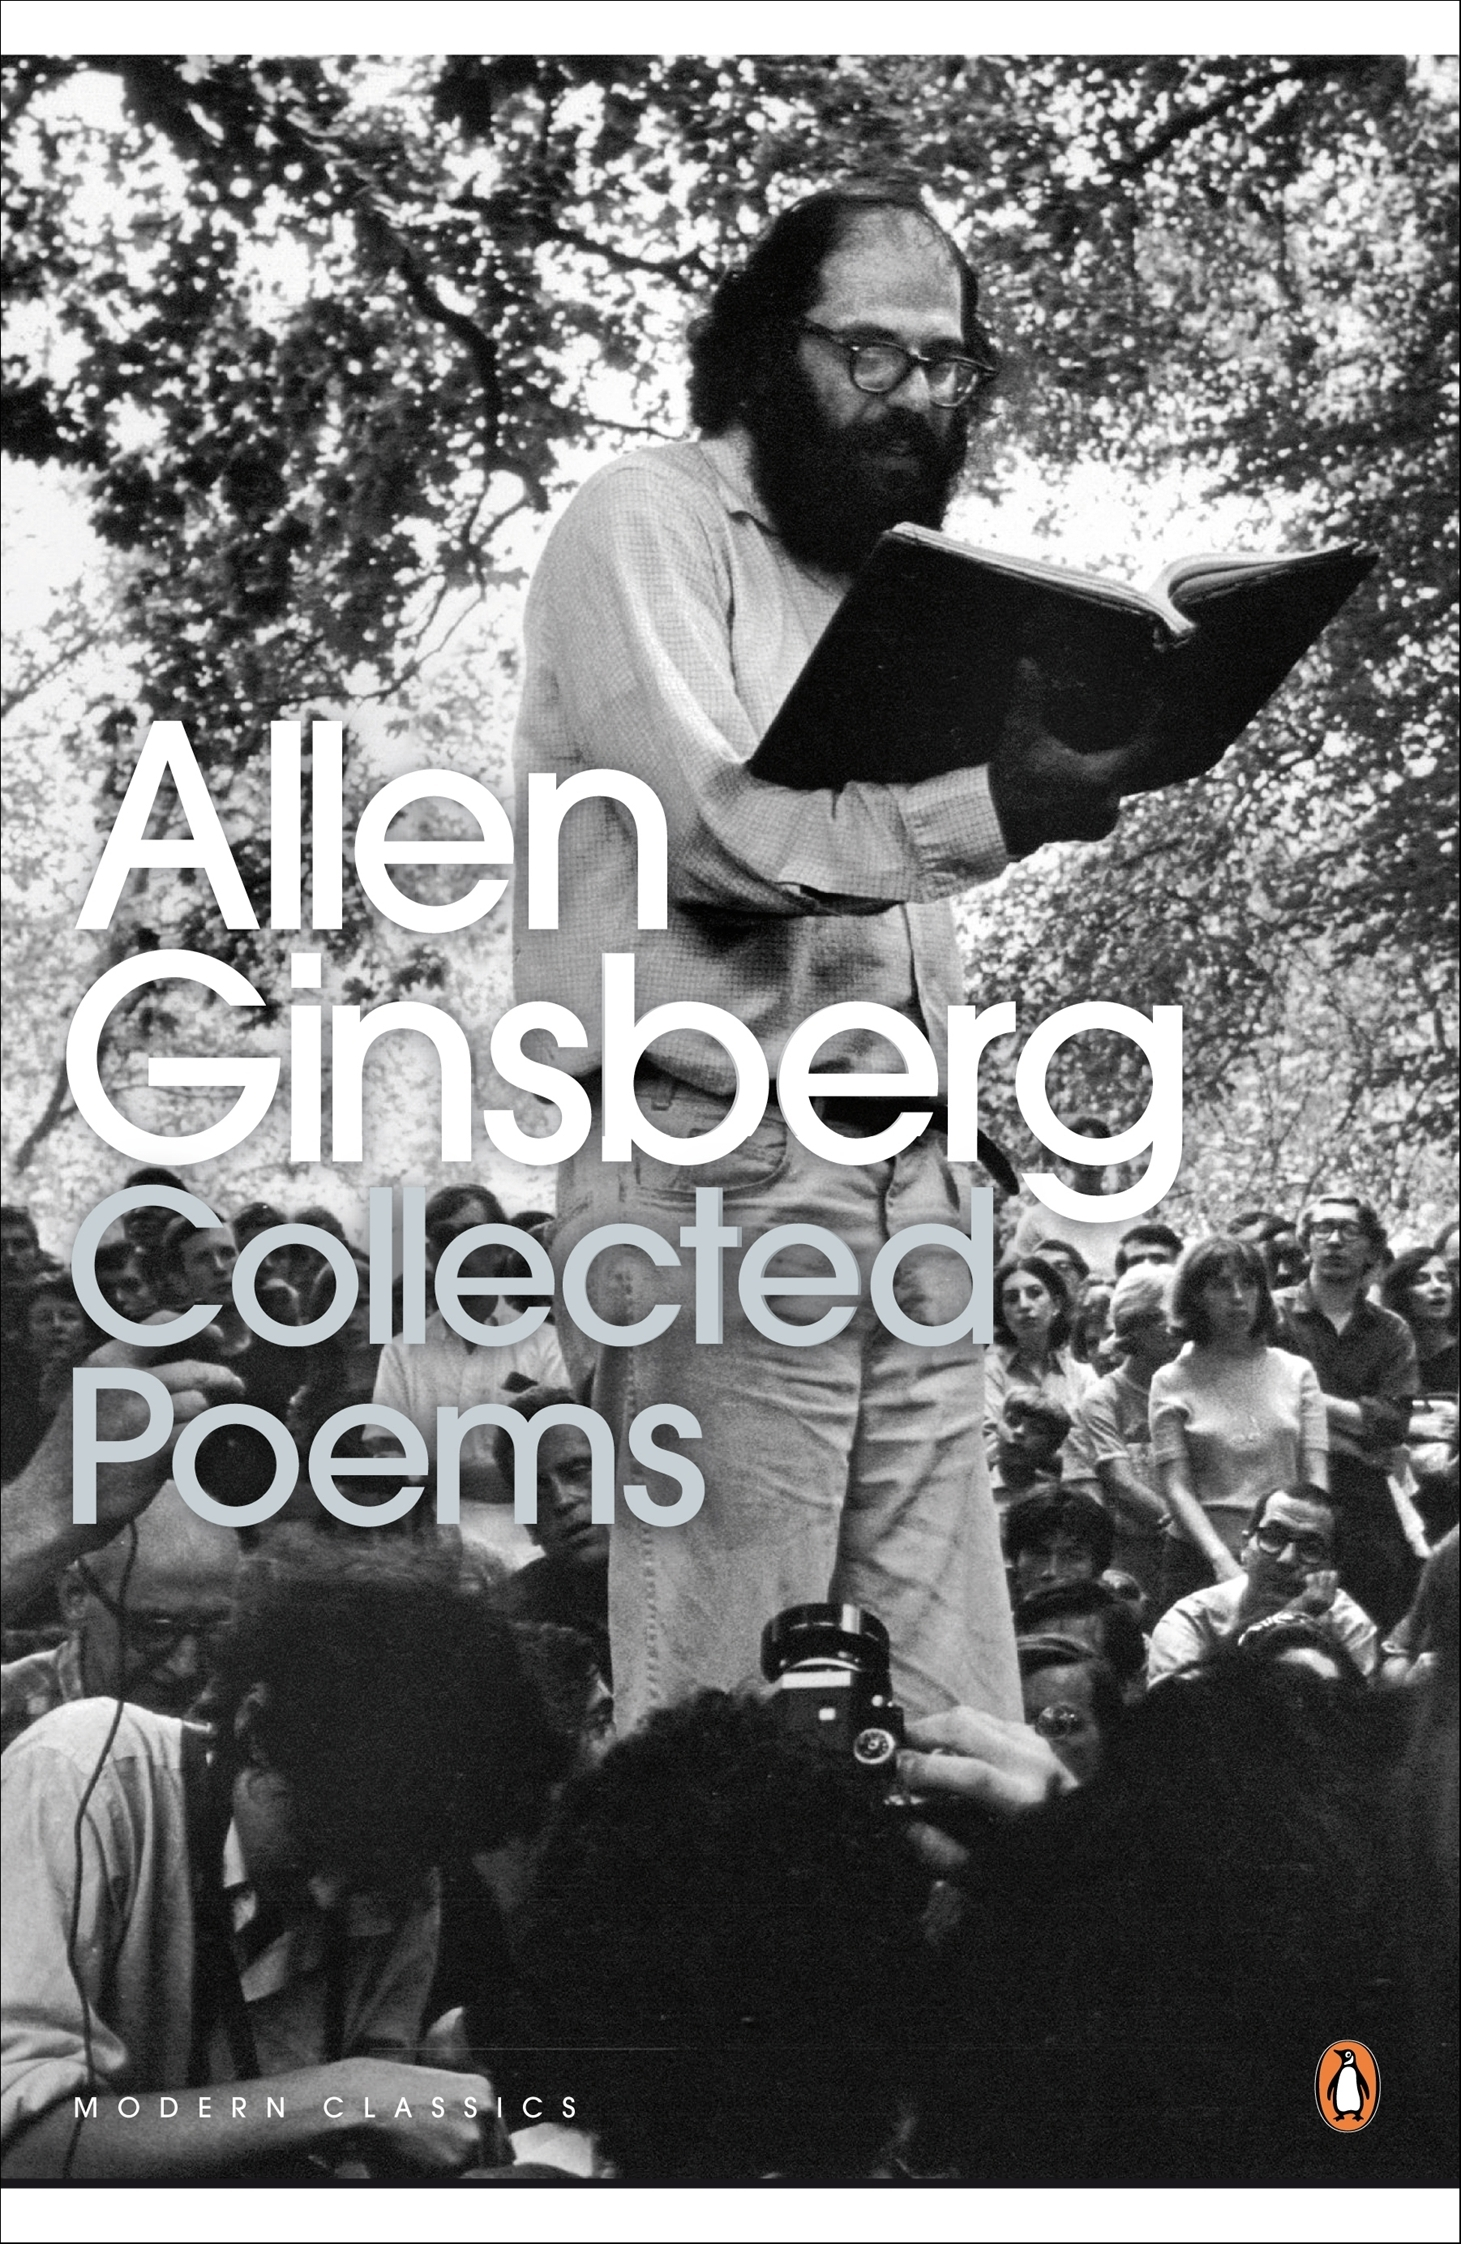 the life and works of allen ginsberg 1 - 20 of 90 works in allen ginsberg navigation and actions works bookmarks filters he knew he wanted to be with him for the rest of his life all allen ginsberg needs is a library book on rhyme and meter.